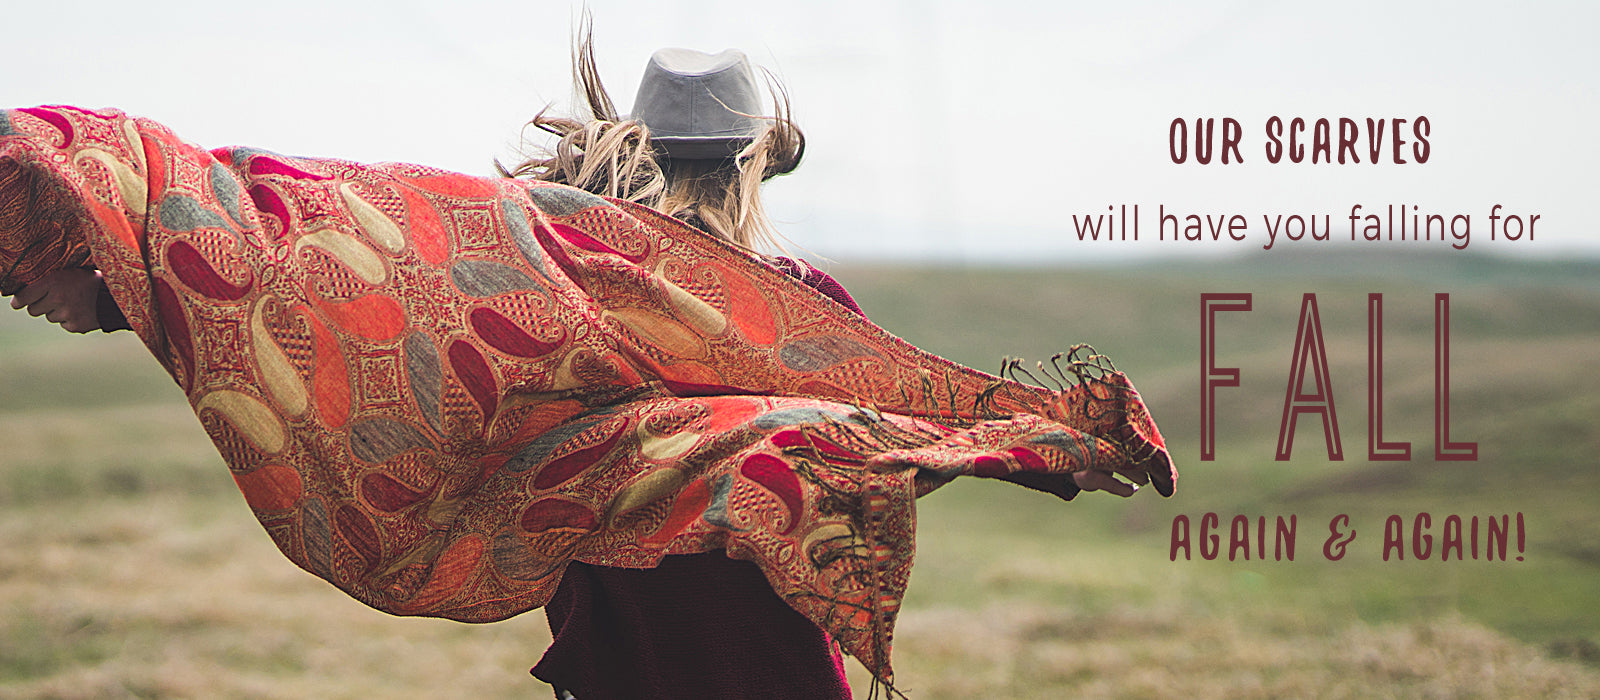 Hilltribe Ontario - your cultural gift shop